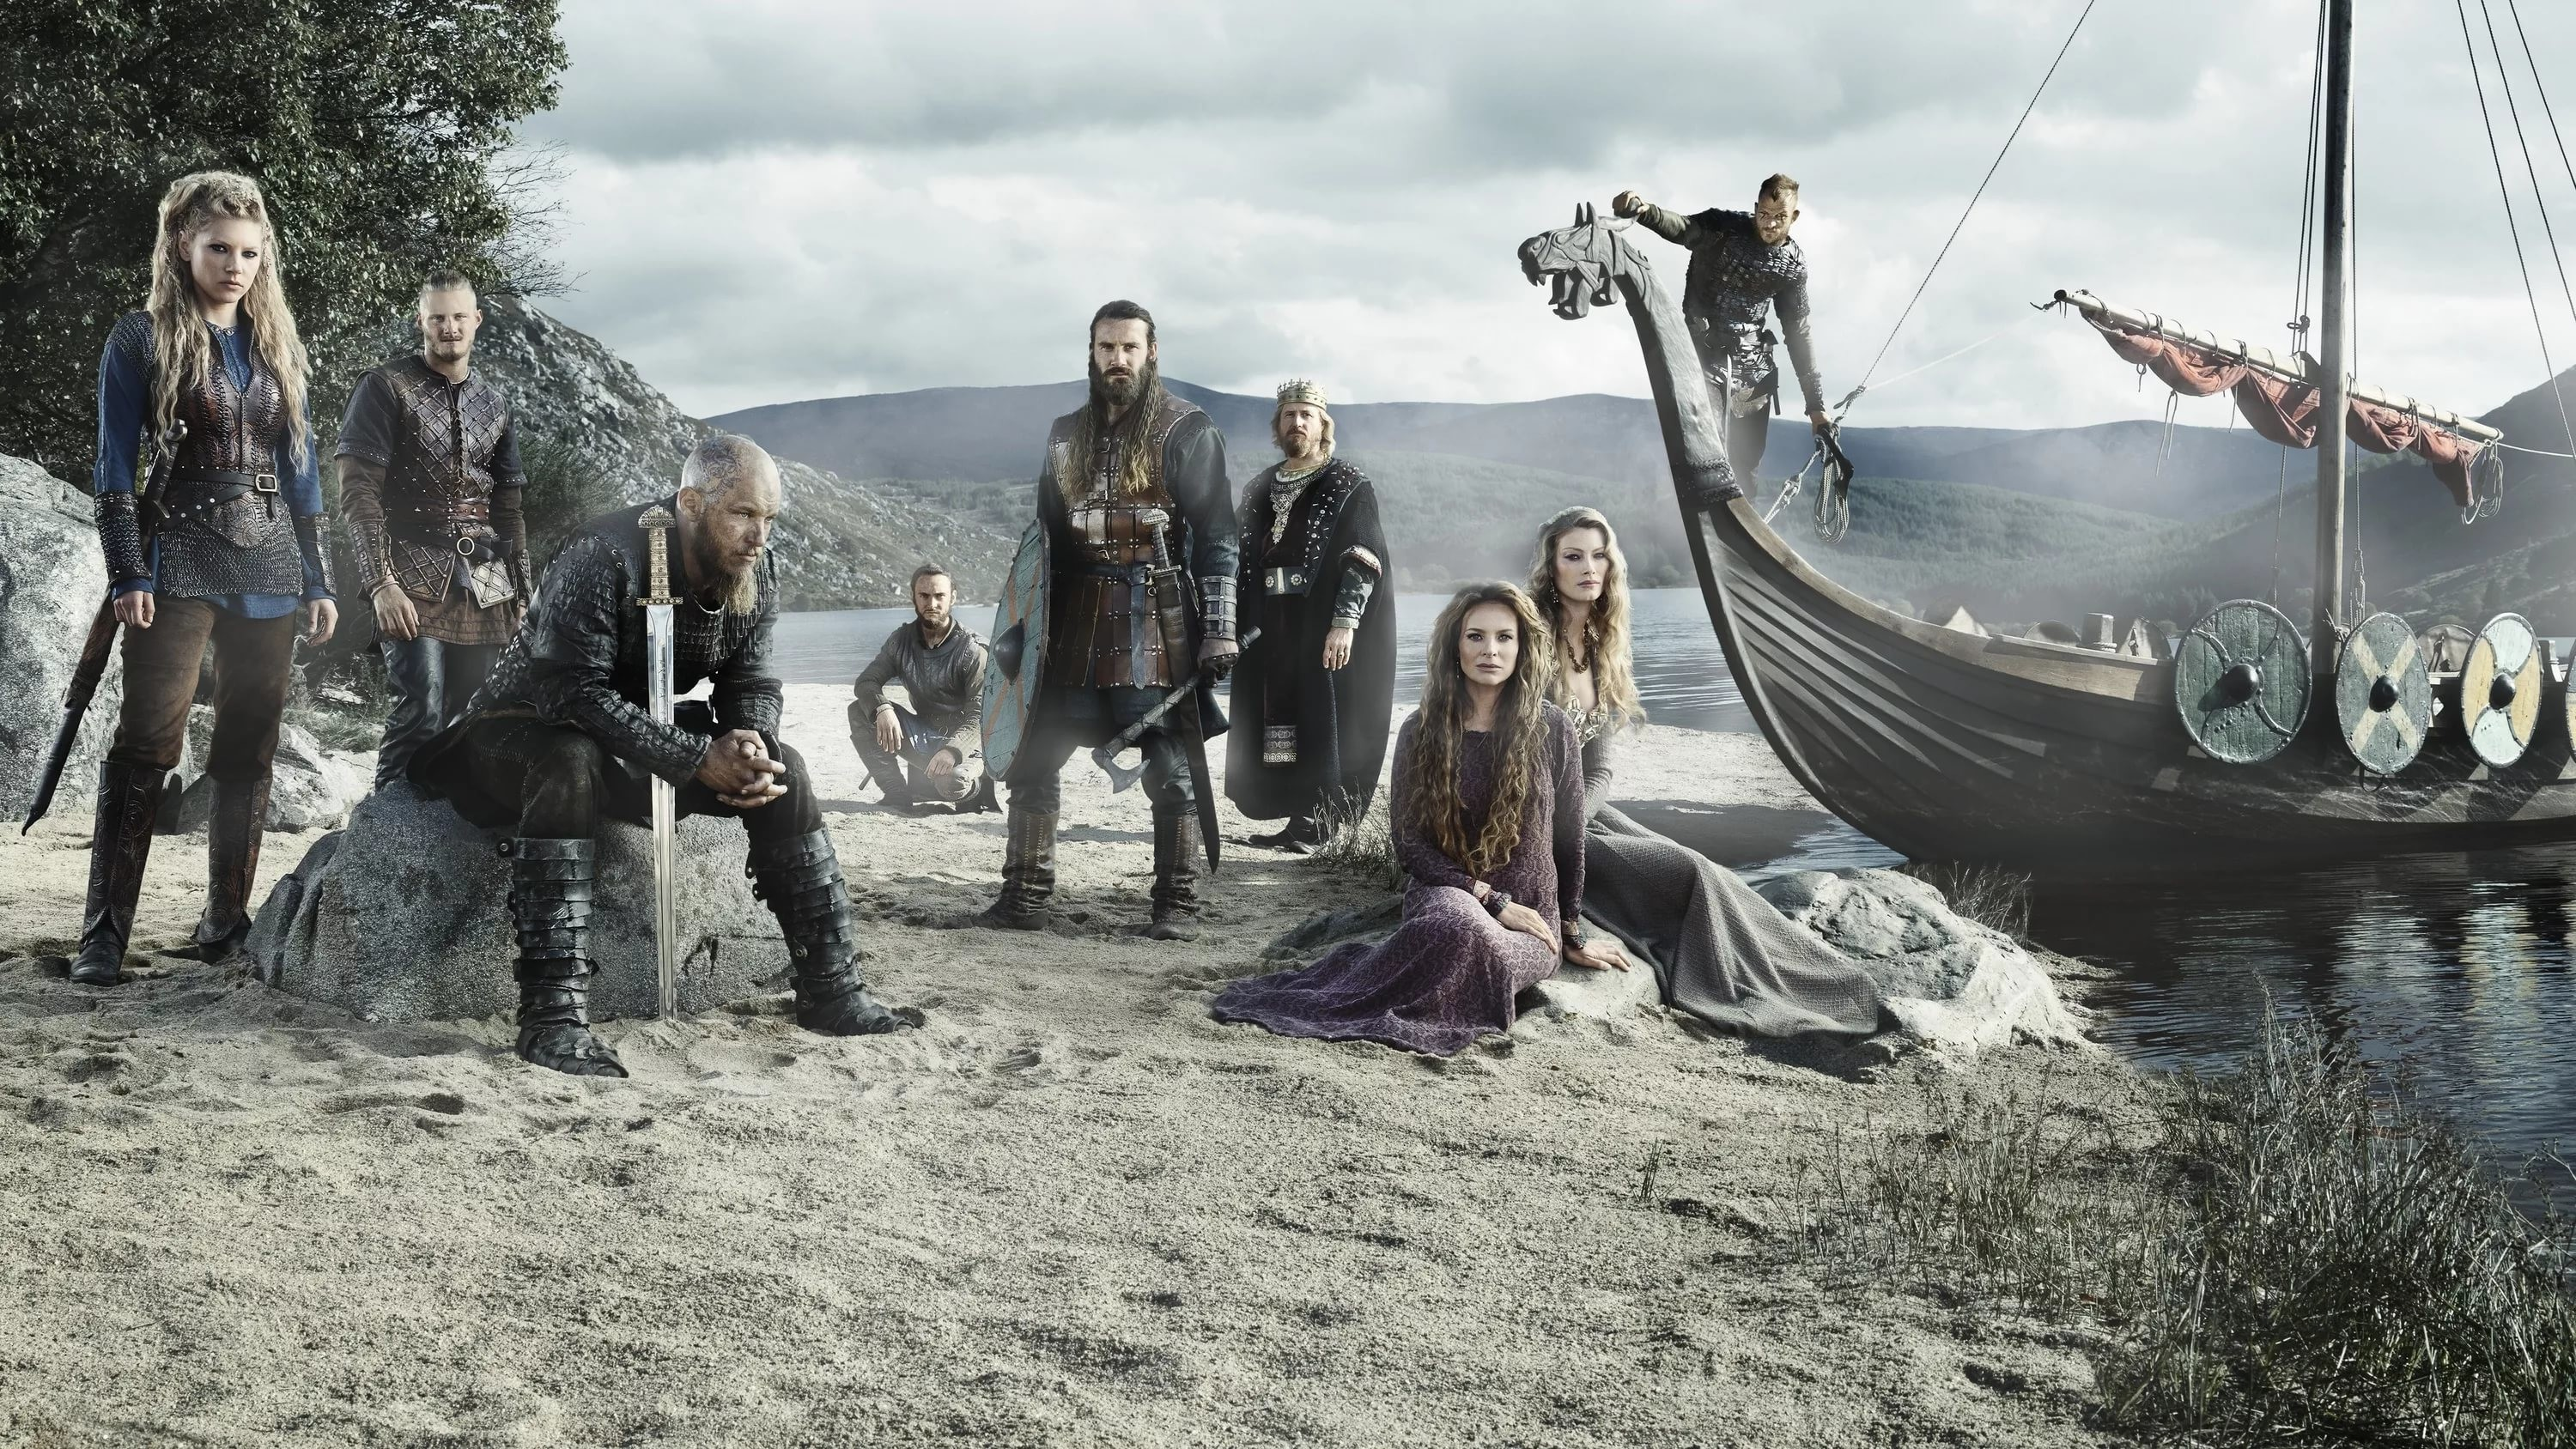 Vikings Wallpaper For Computer 74 Images